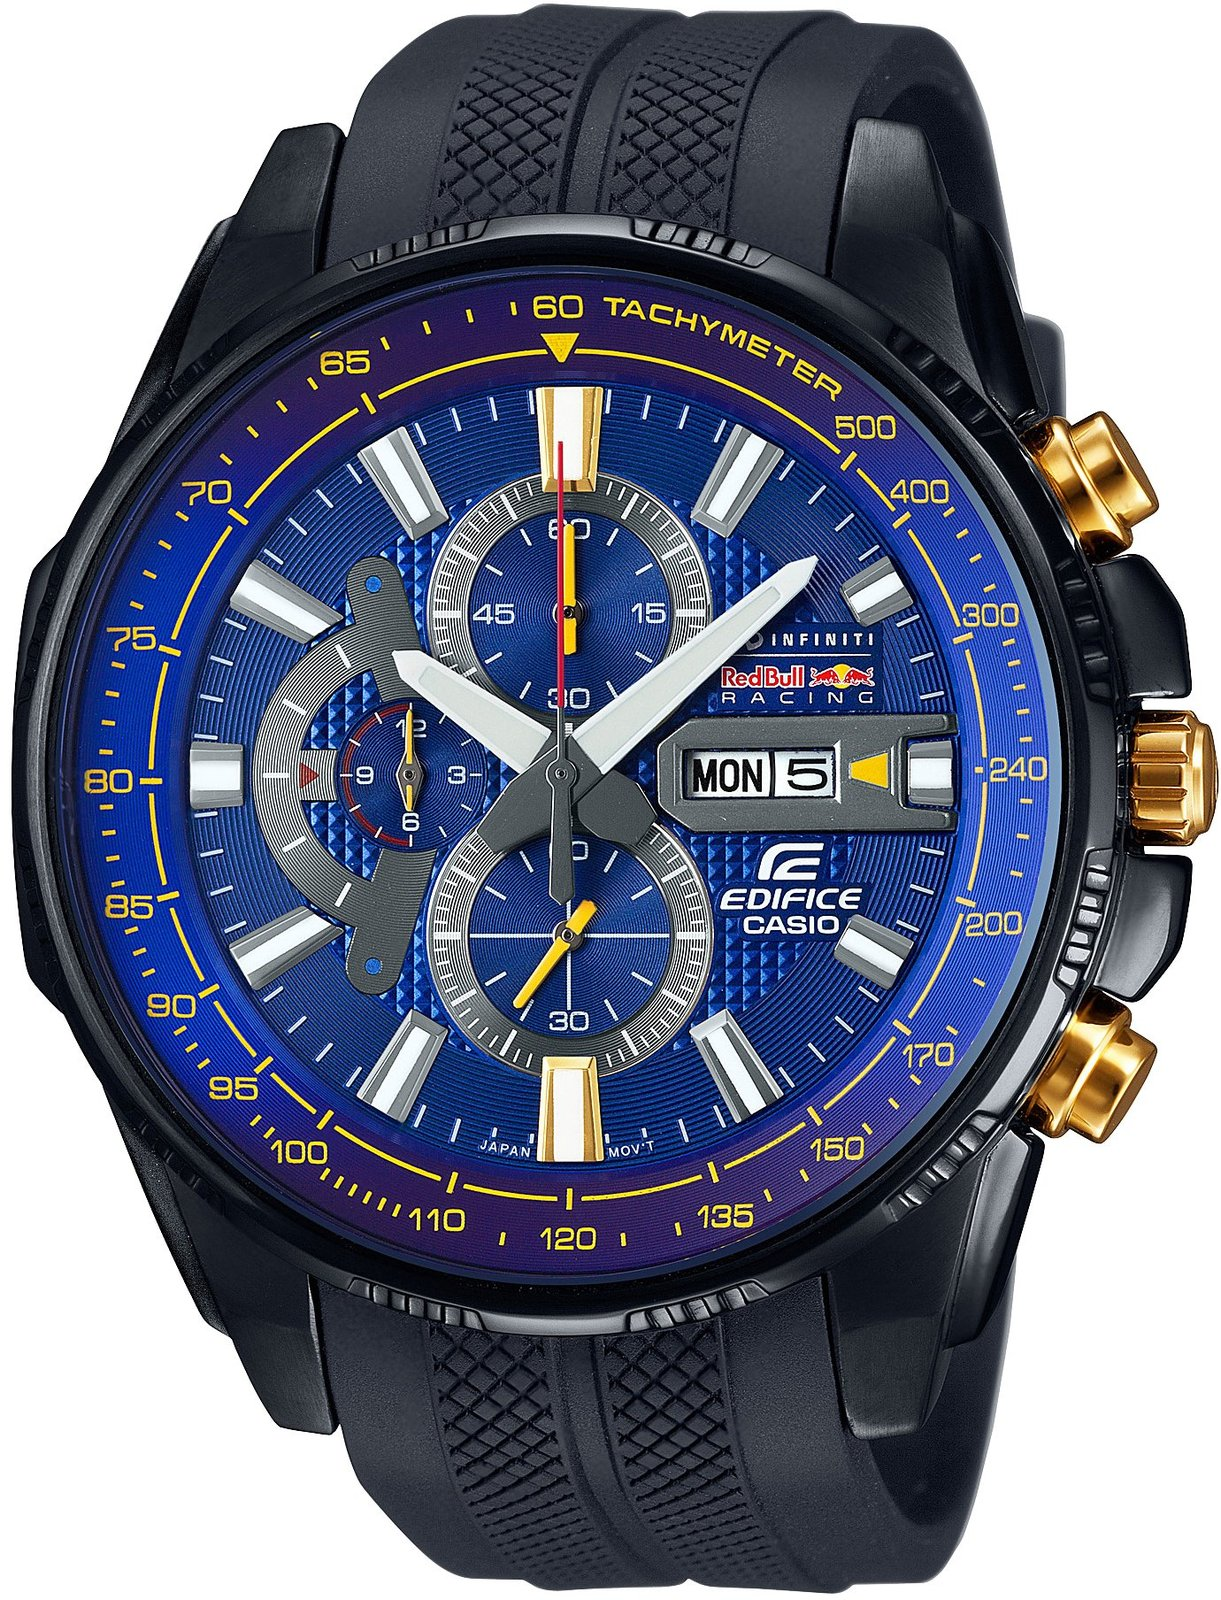 Primary image for Casio Edifice Infiniti Red Bull Racing Limited Edition EFR-549RBP-2AJR